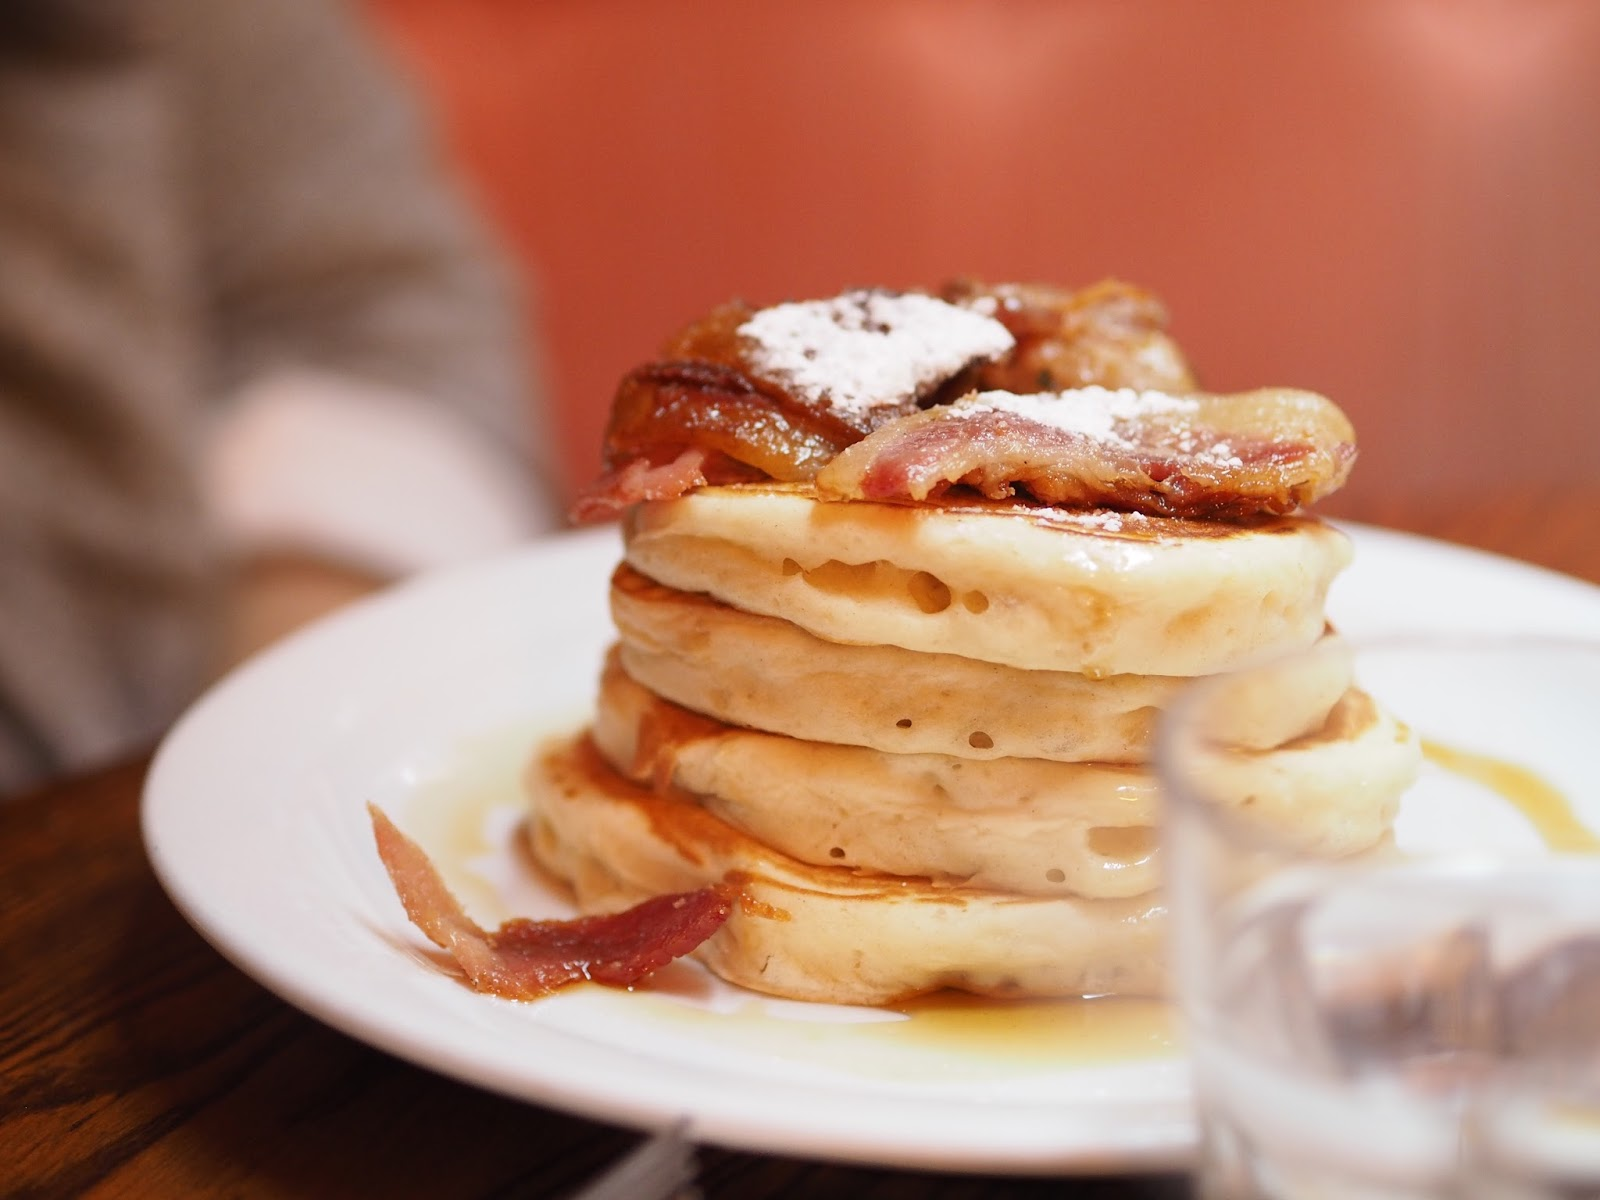 The Breakfast Club Bacon and Maple Syrup Pancakes